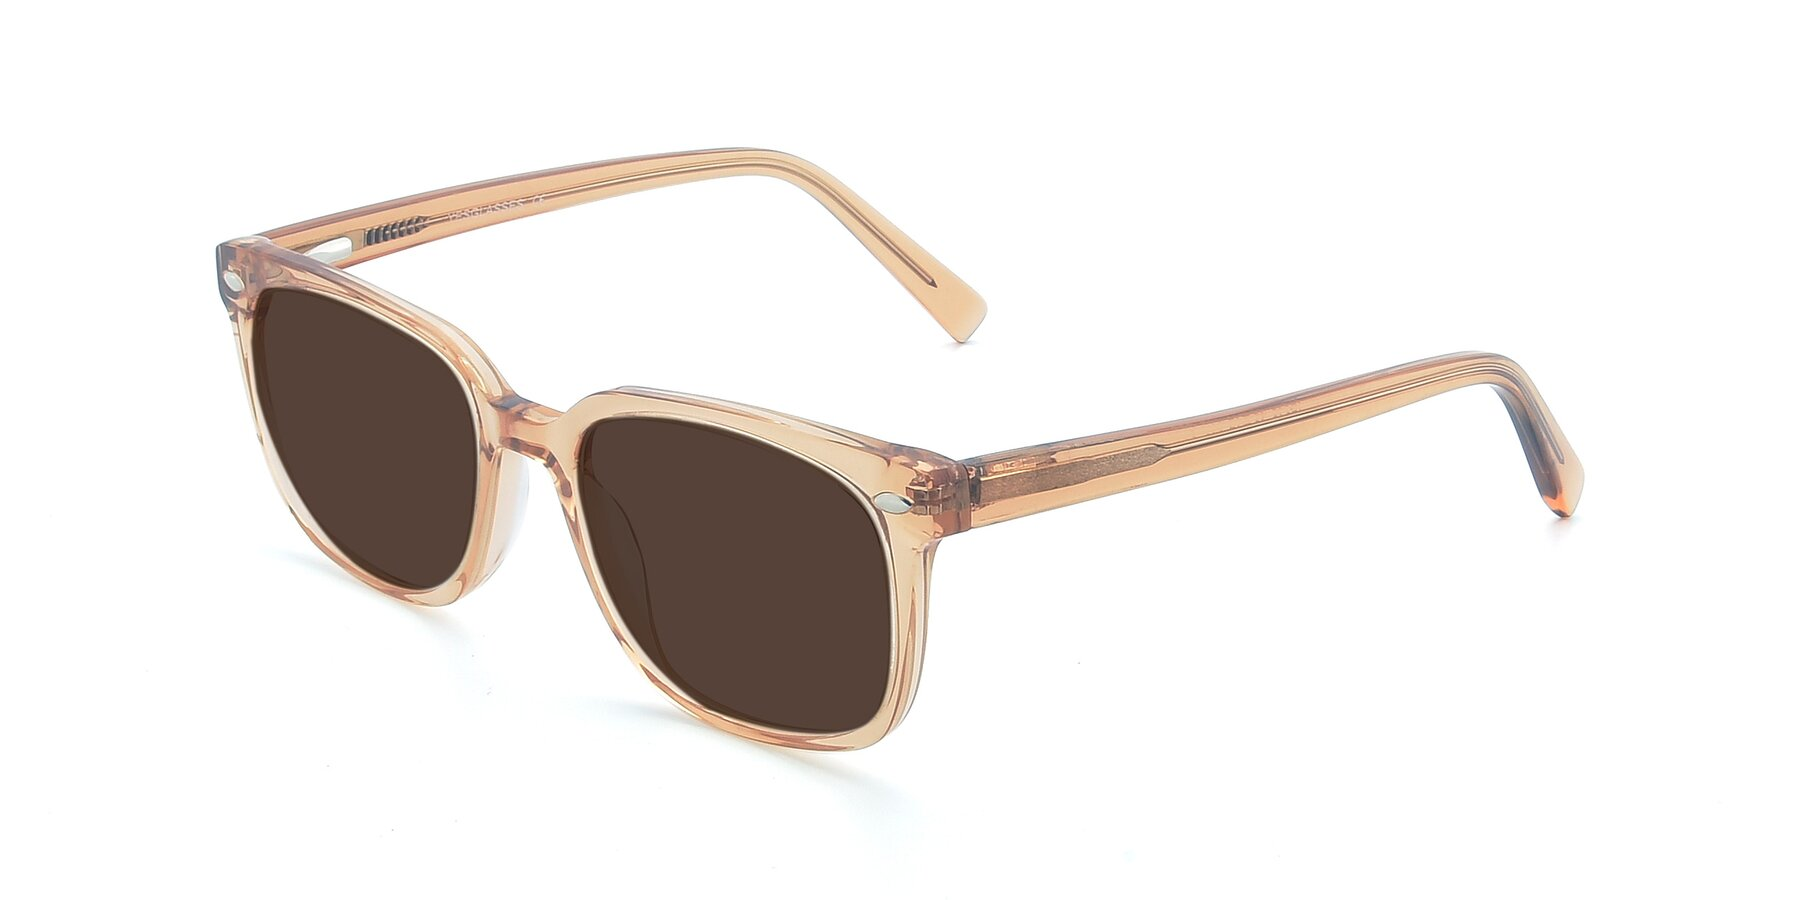 Angle of 17349 in Transparent Caramel with Brown Tinted Lenses